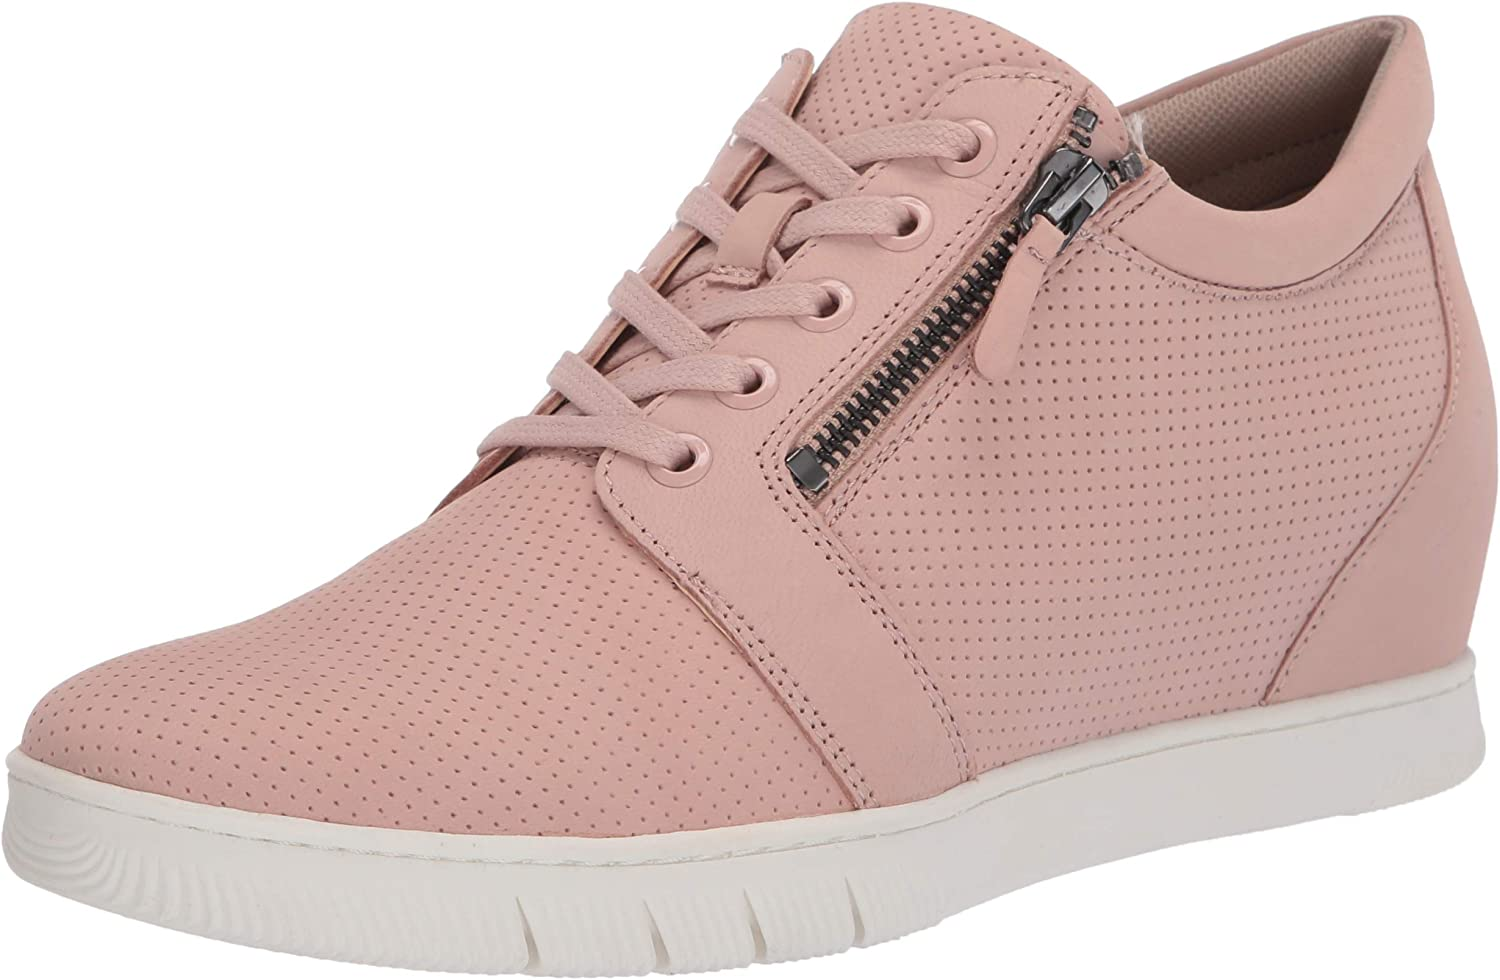 Naturalizer Women's Kai Sneakers